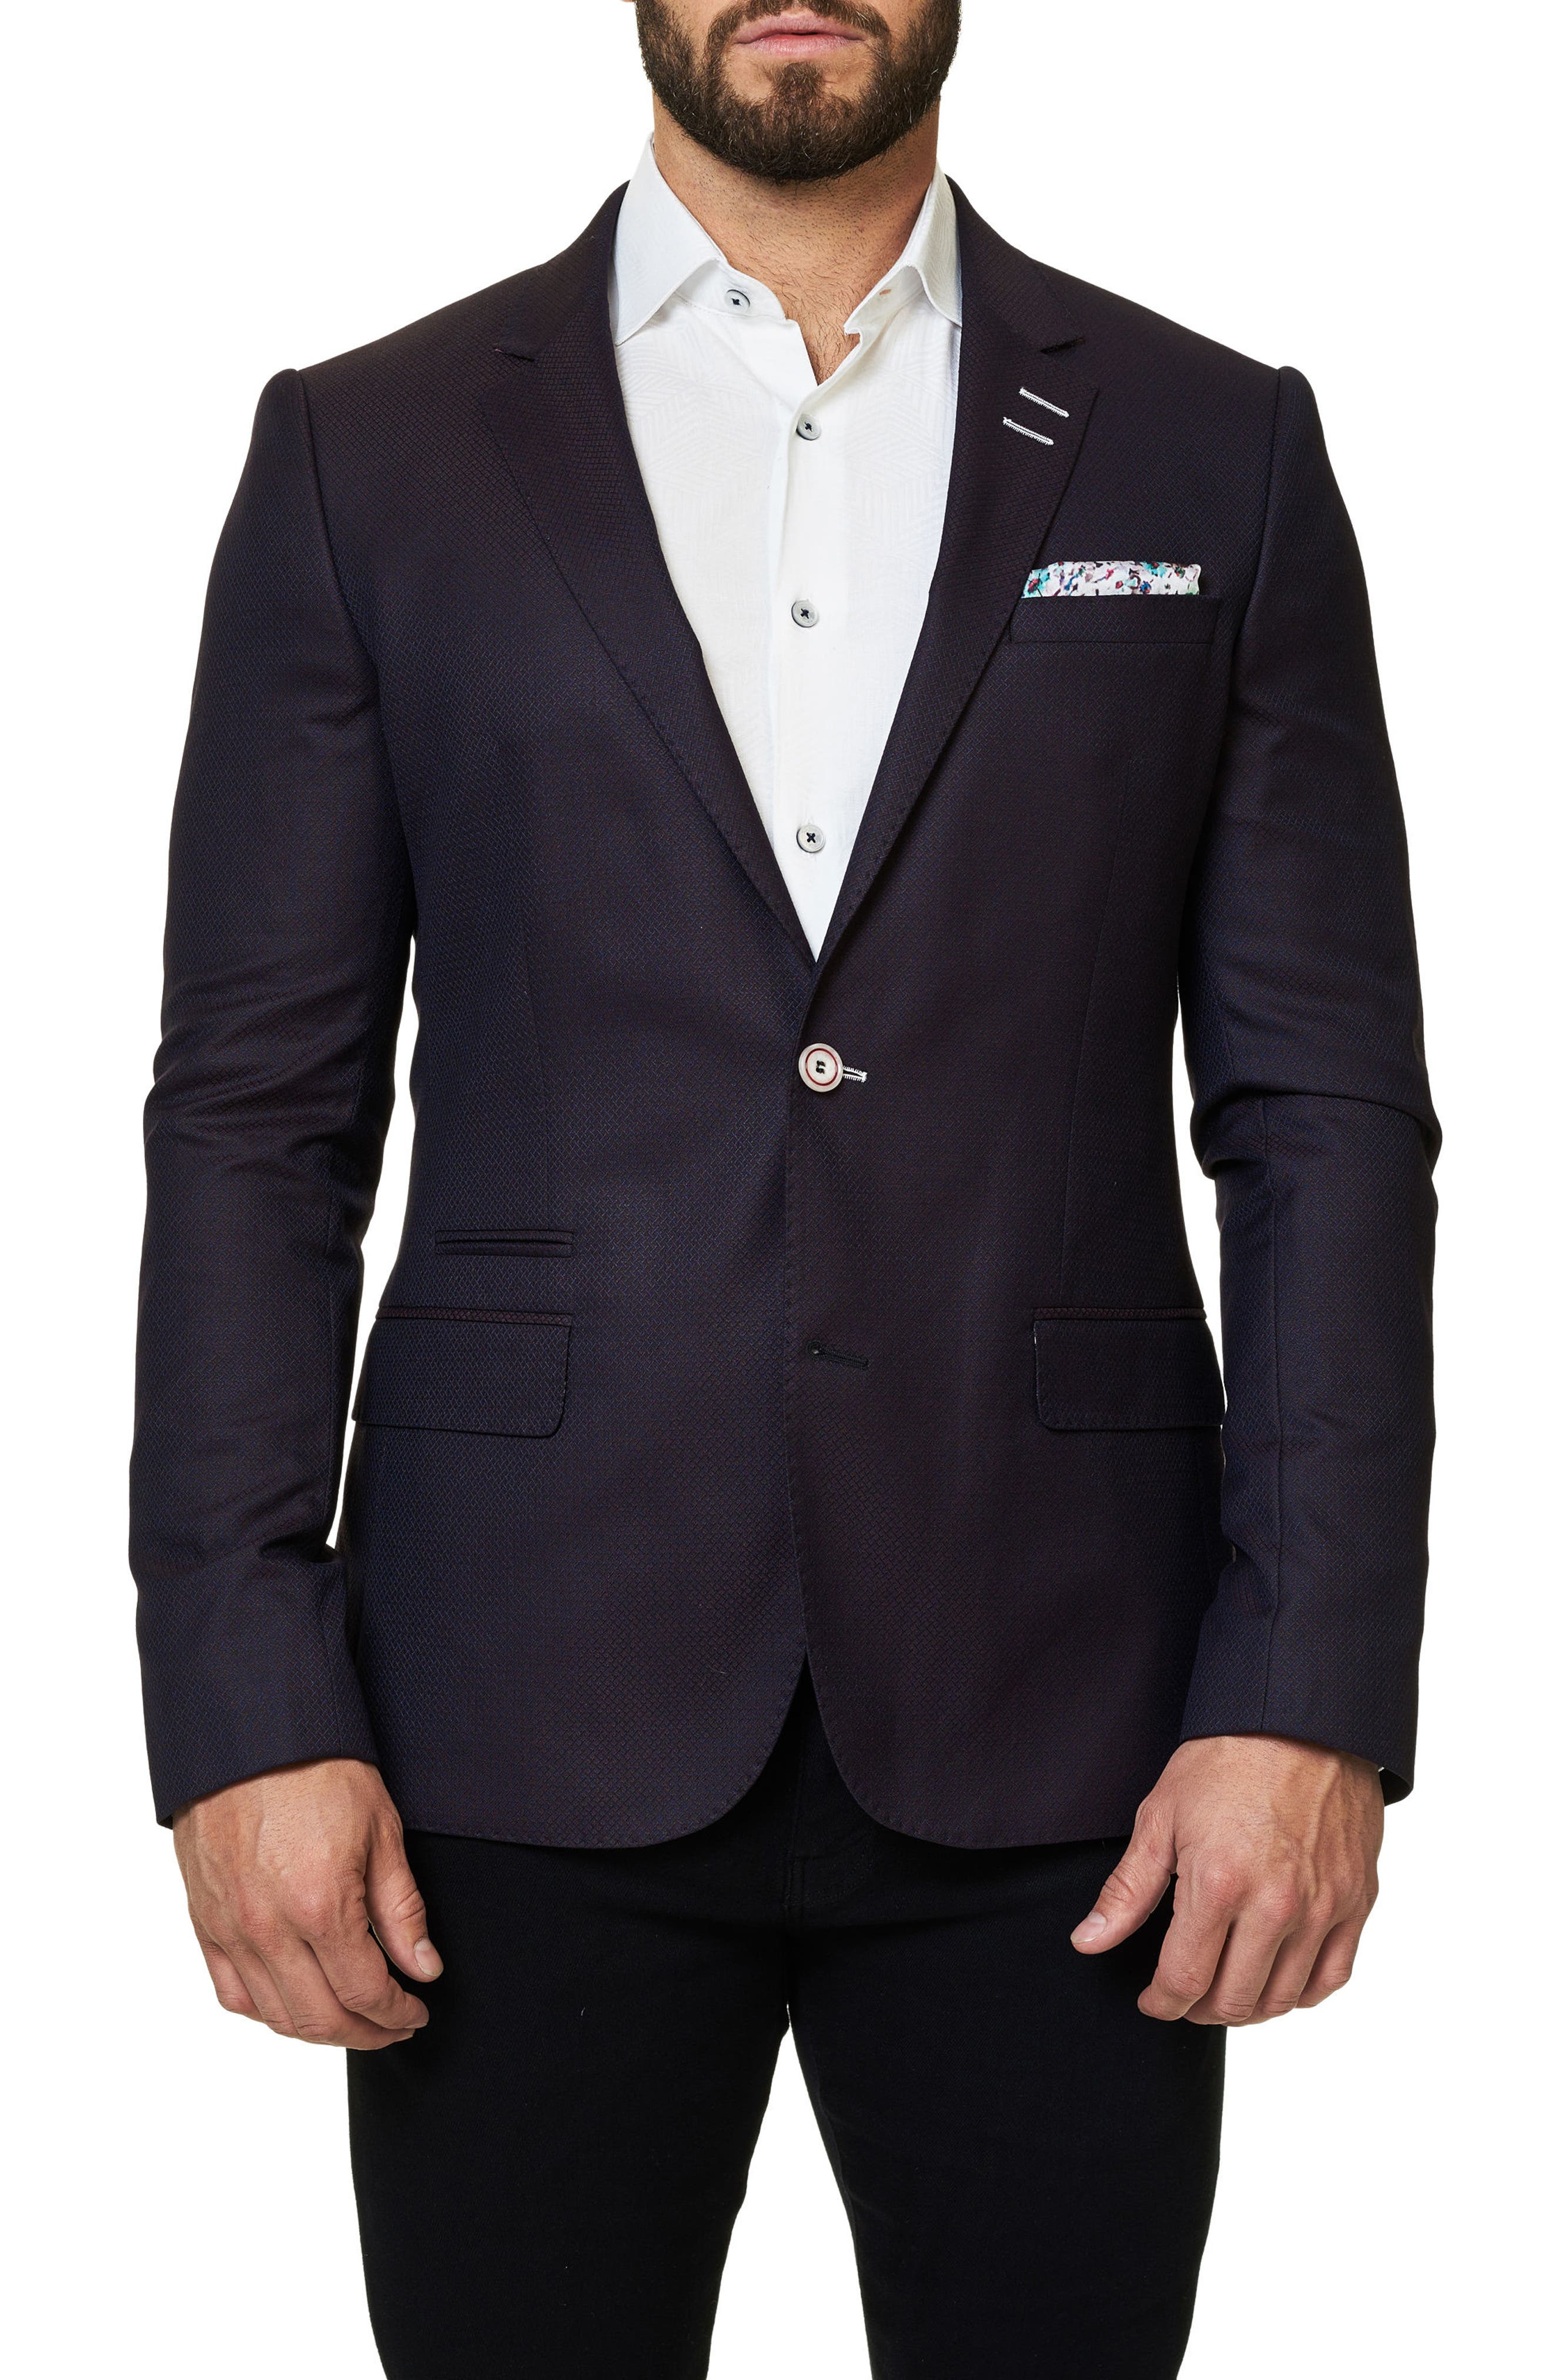 Socrate Textured Sport Coat,                             Main thumbnail 1, color,                             610